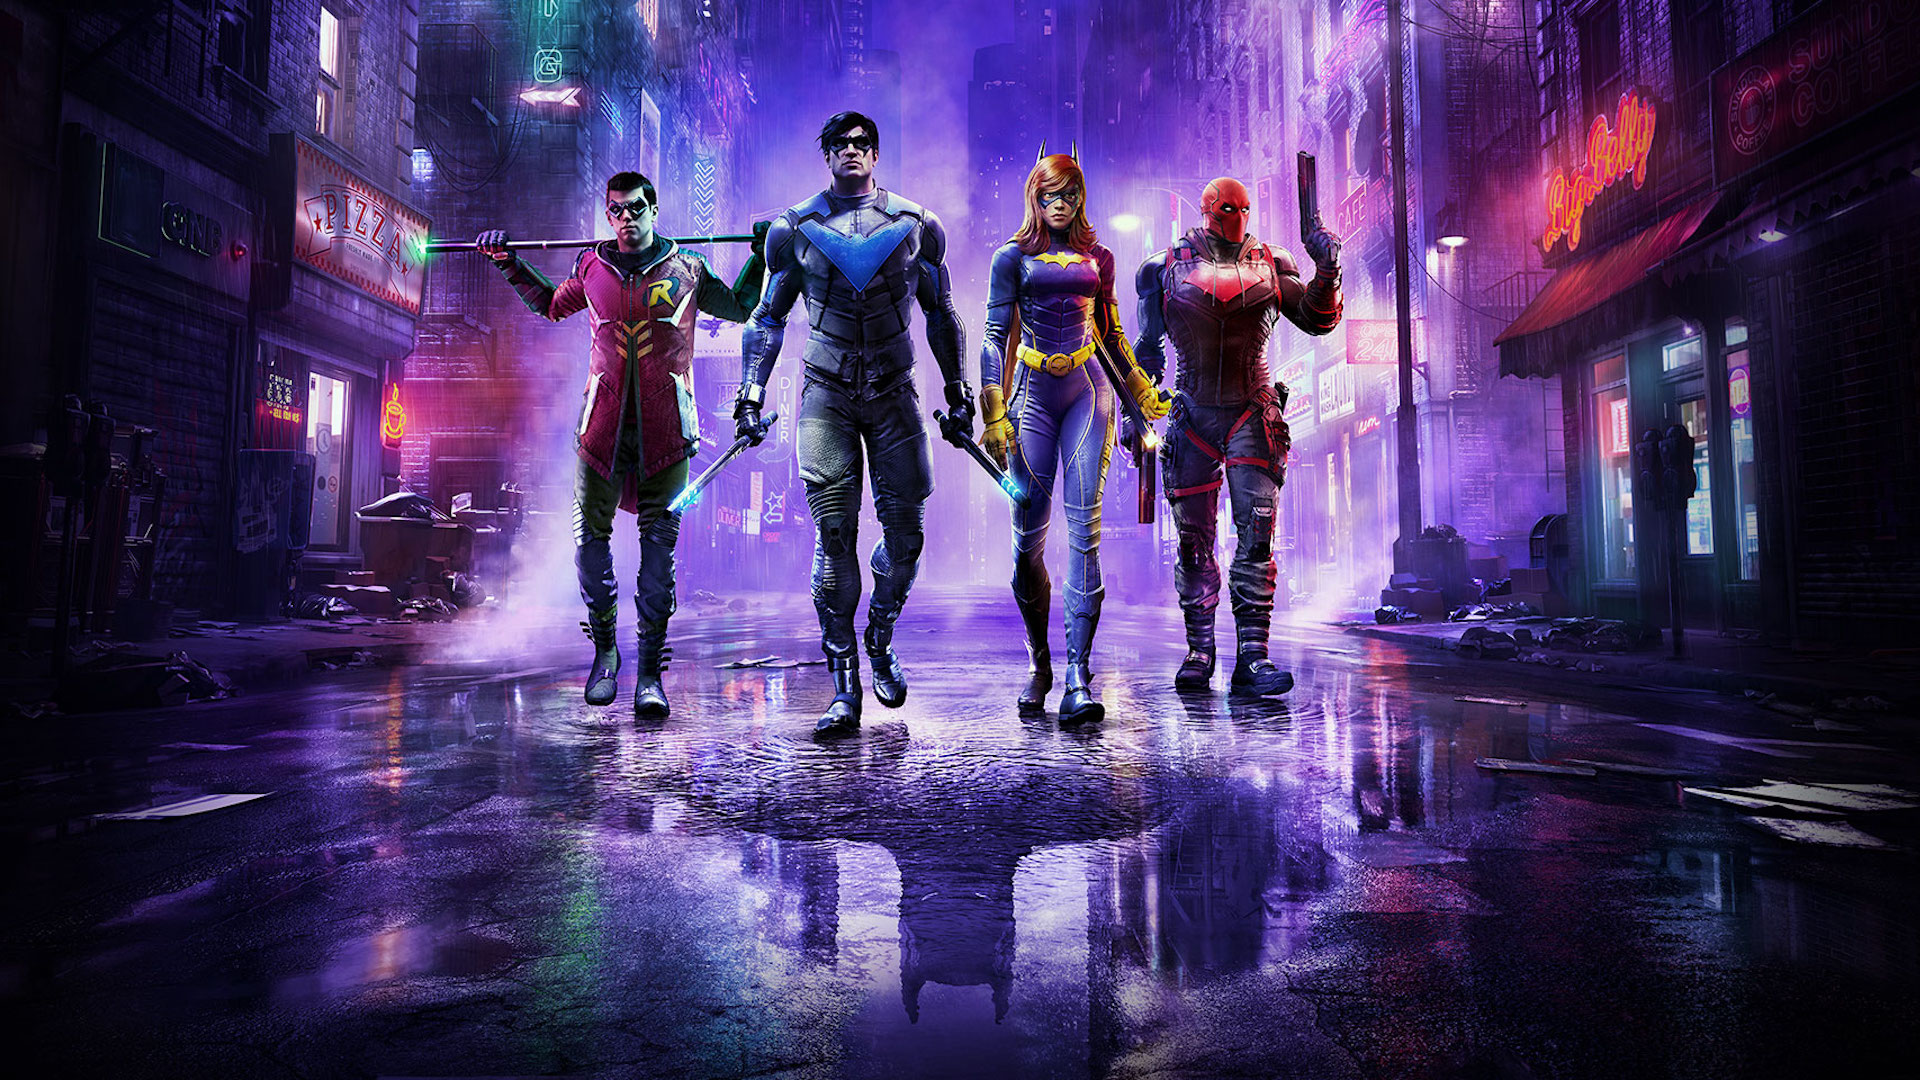 Robin, Nightwing, Batgirl, and Red Hood walk down a wet alley in artwork from Gotham Knights